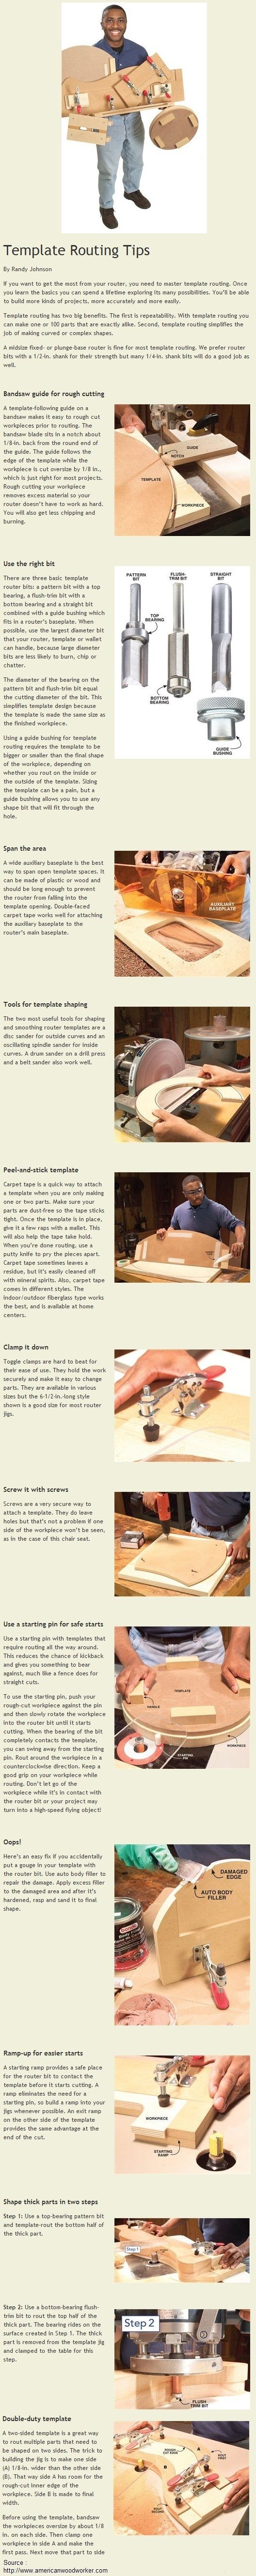 389 best router images on pinterest carpentry router jig and tools